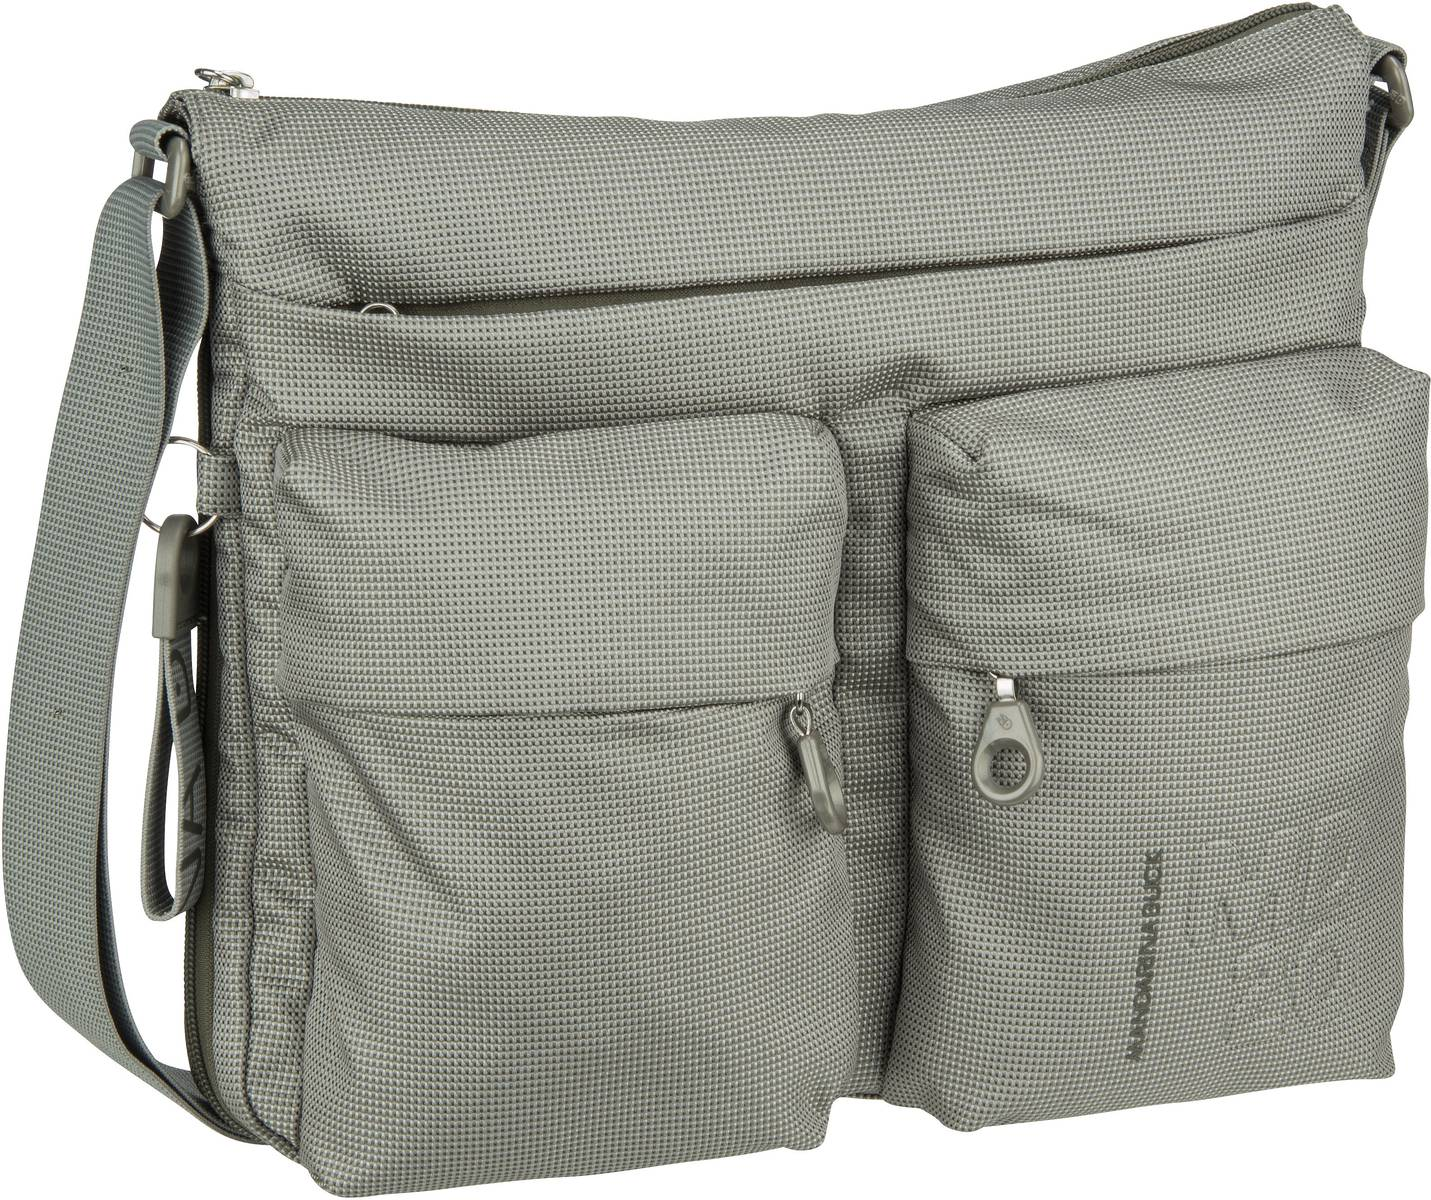 Umhängetasche MD20 Big Crossover Bag QMTX6 Soldier